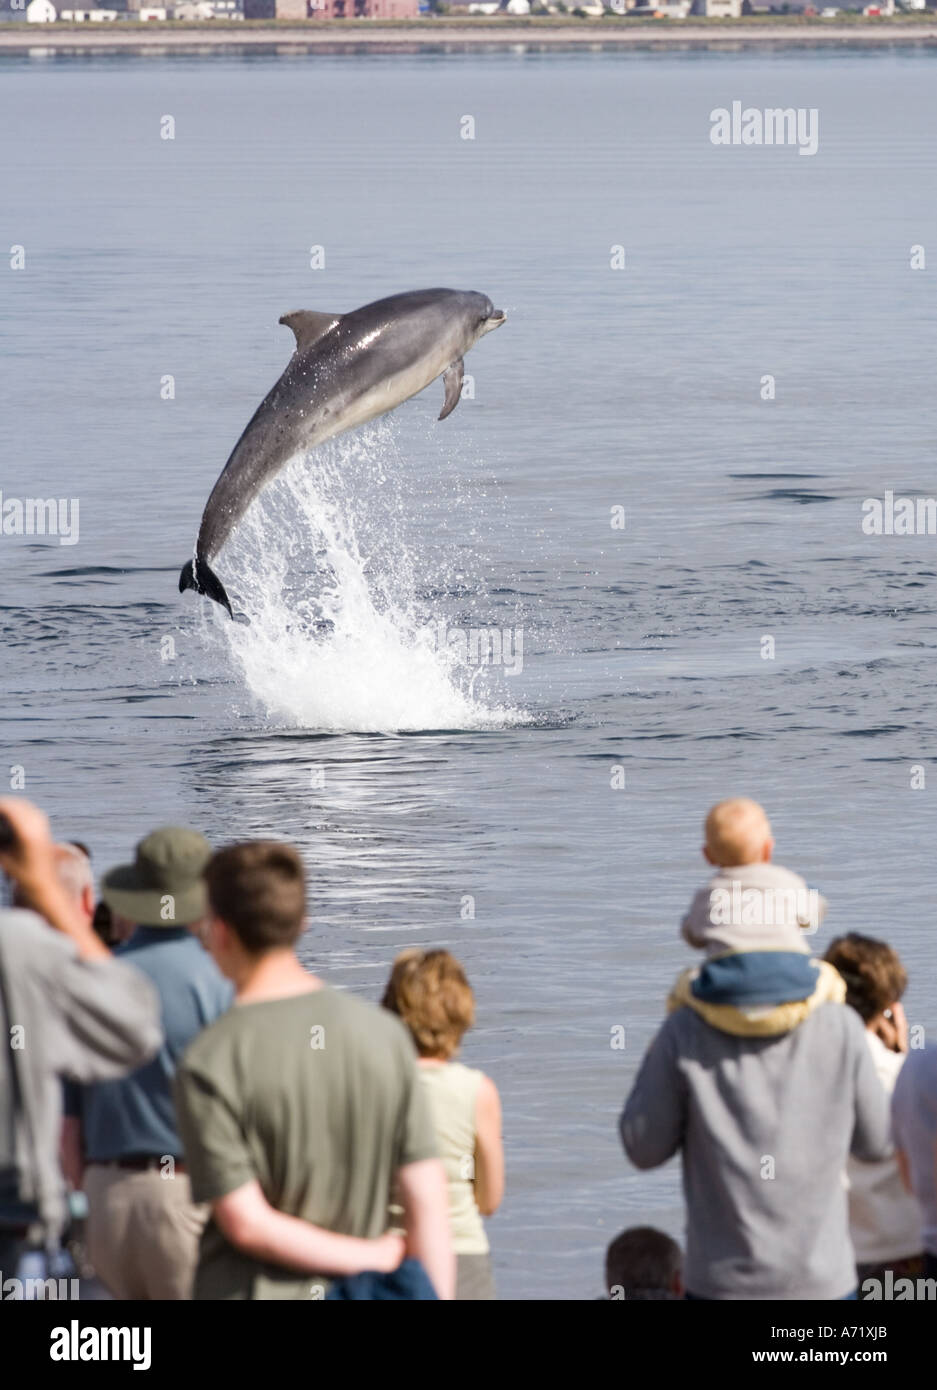 Moray Firth bottlenose dolphins breaching - Stock Image